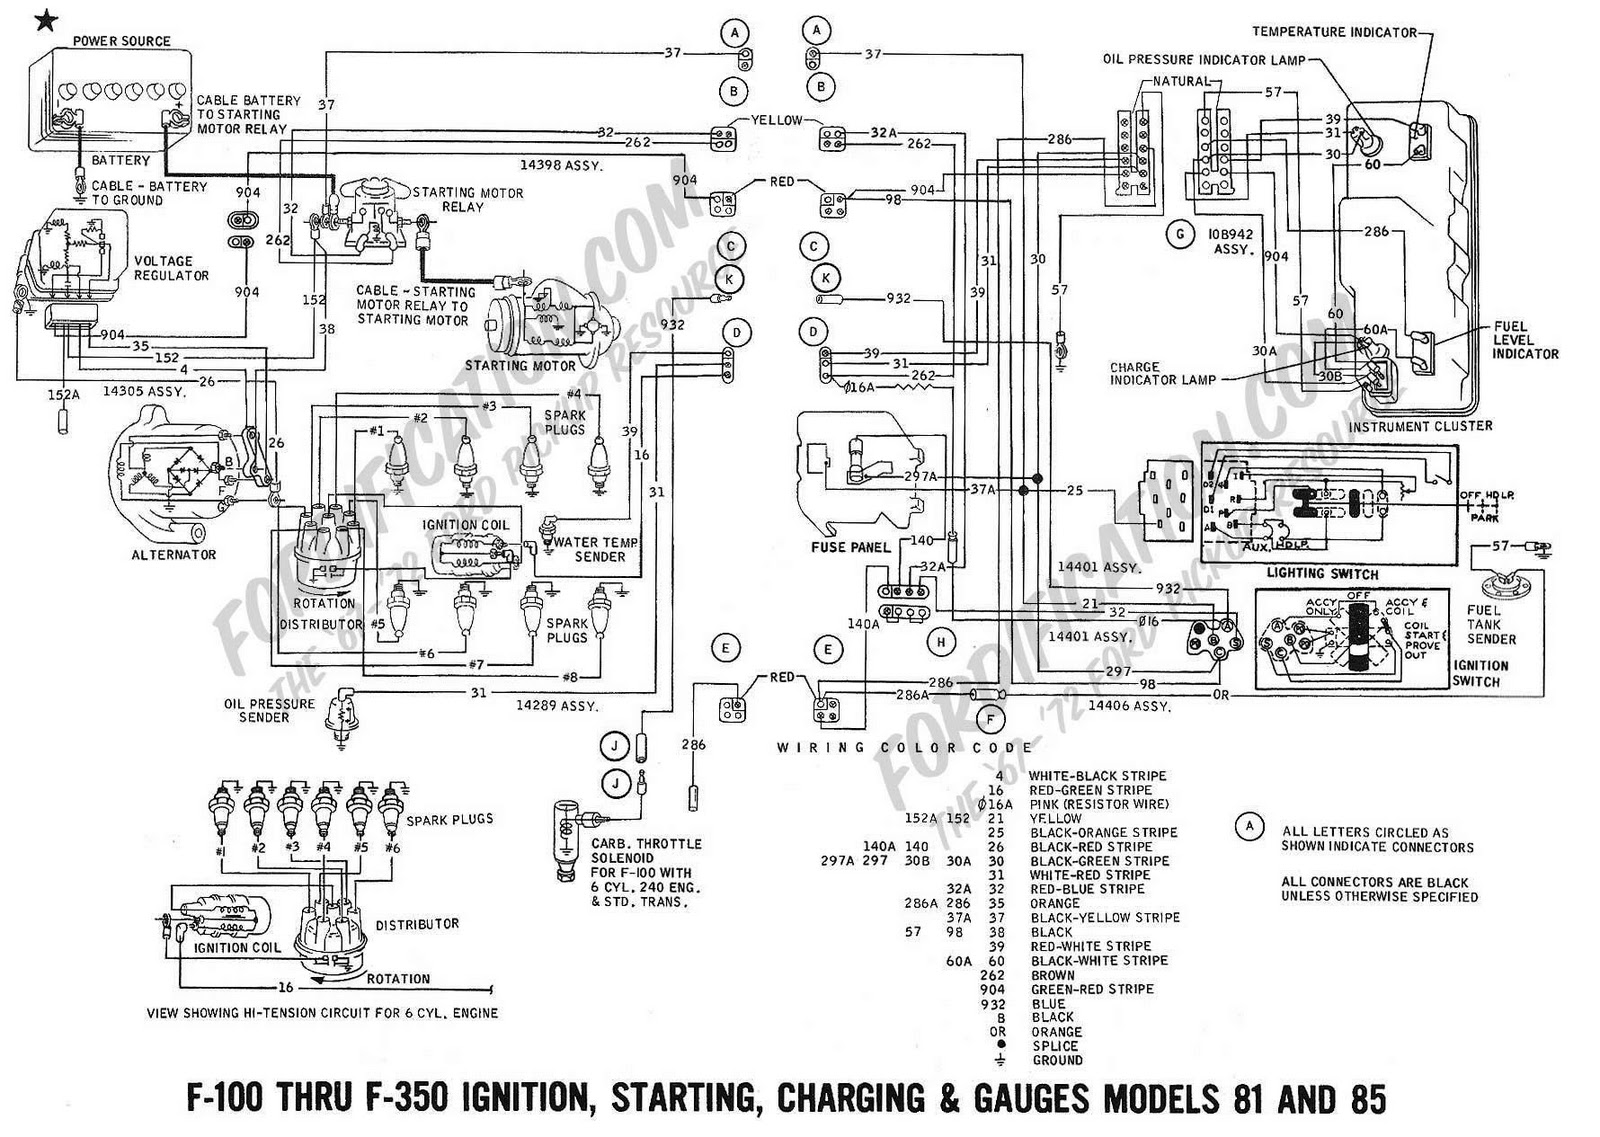 1976 Ford Steering Column Wiring Diagram - 13.12.derma-lift.de • Wiring Diagram For Ford Truck on 1968 ford truck parts, 1968 ford truck cab mount, pickup truck diagram, 1968 ford truck brochure, 1968 ford truck radio, 1968 ford truck carburetor, truck parts diagram, ford truck engine diagram, 1968 ford truck wheels, 1968 ford truck wire schematic drawing, 1968 ford truck exhaust, 1968 ford truck shop manual, 1968 ford truck transmission, ford truck rear brake diagram, 93 ford relay diagram, 1968 ford truck air cleaner,